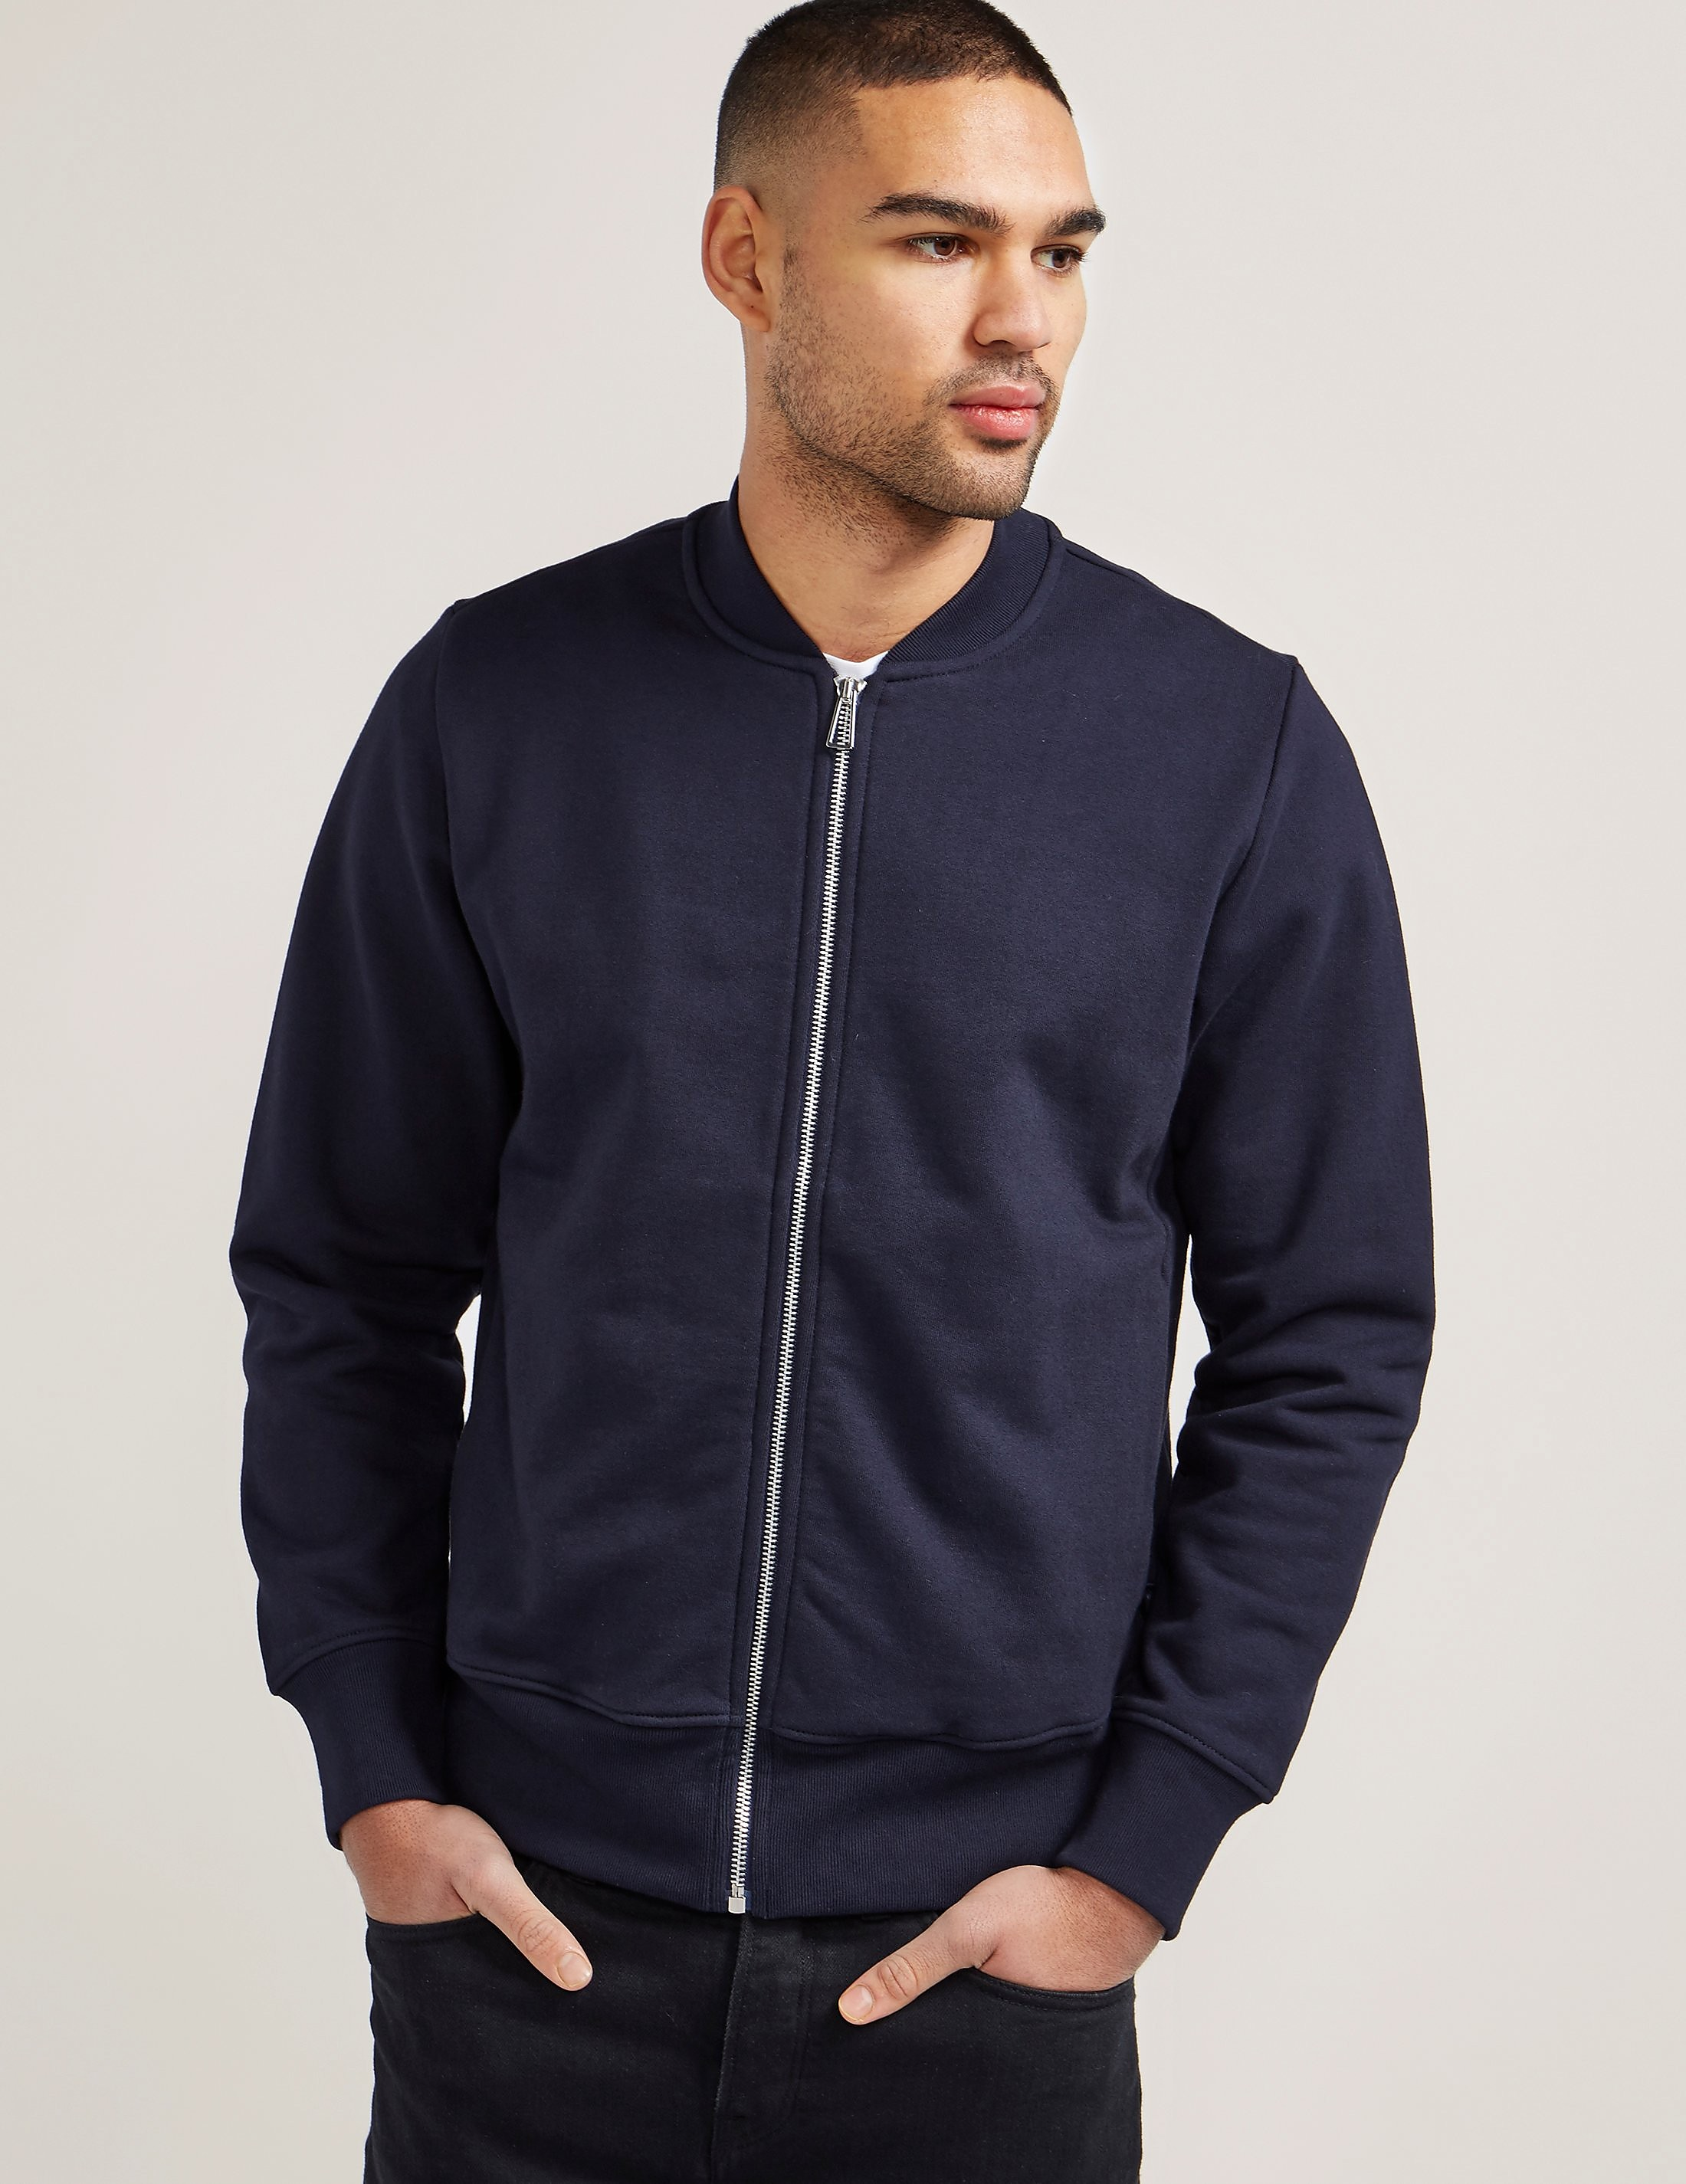 Paul Smith Full Zip Bomber Sweatshirt